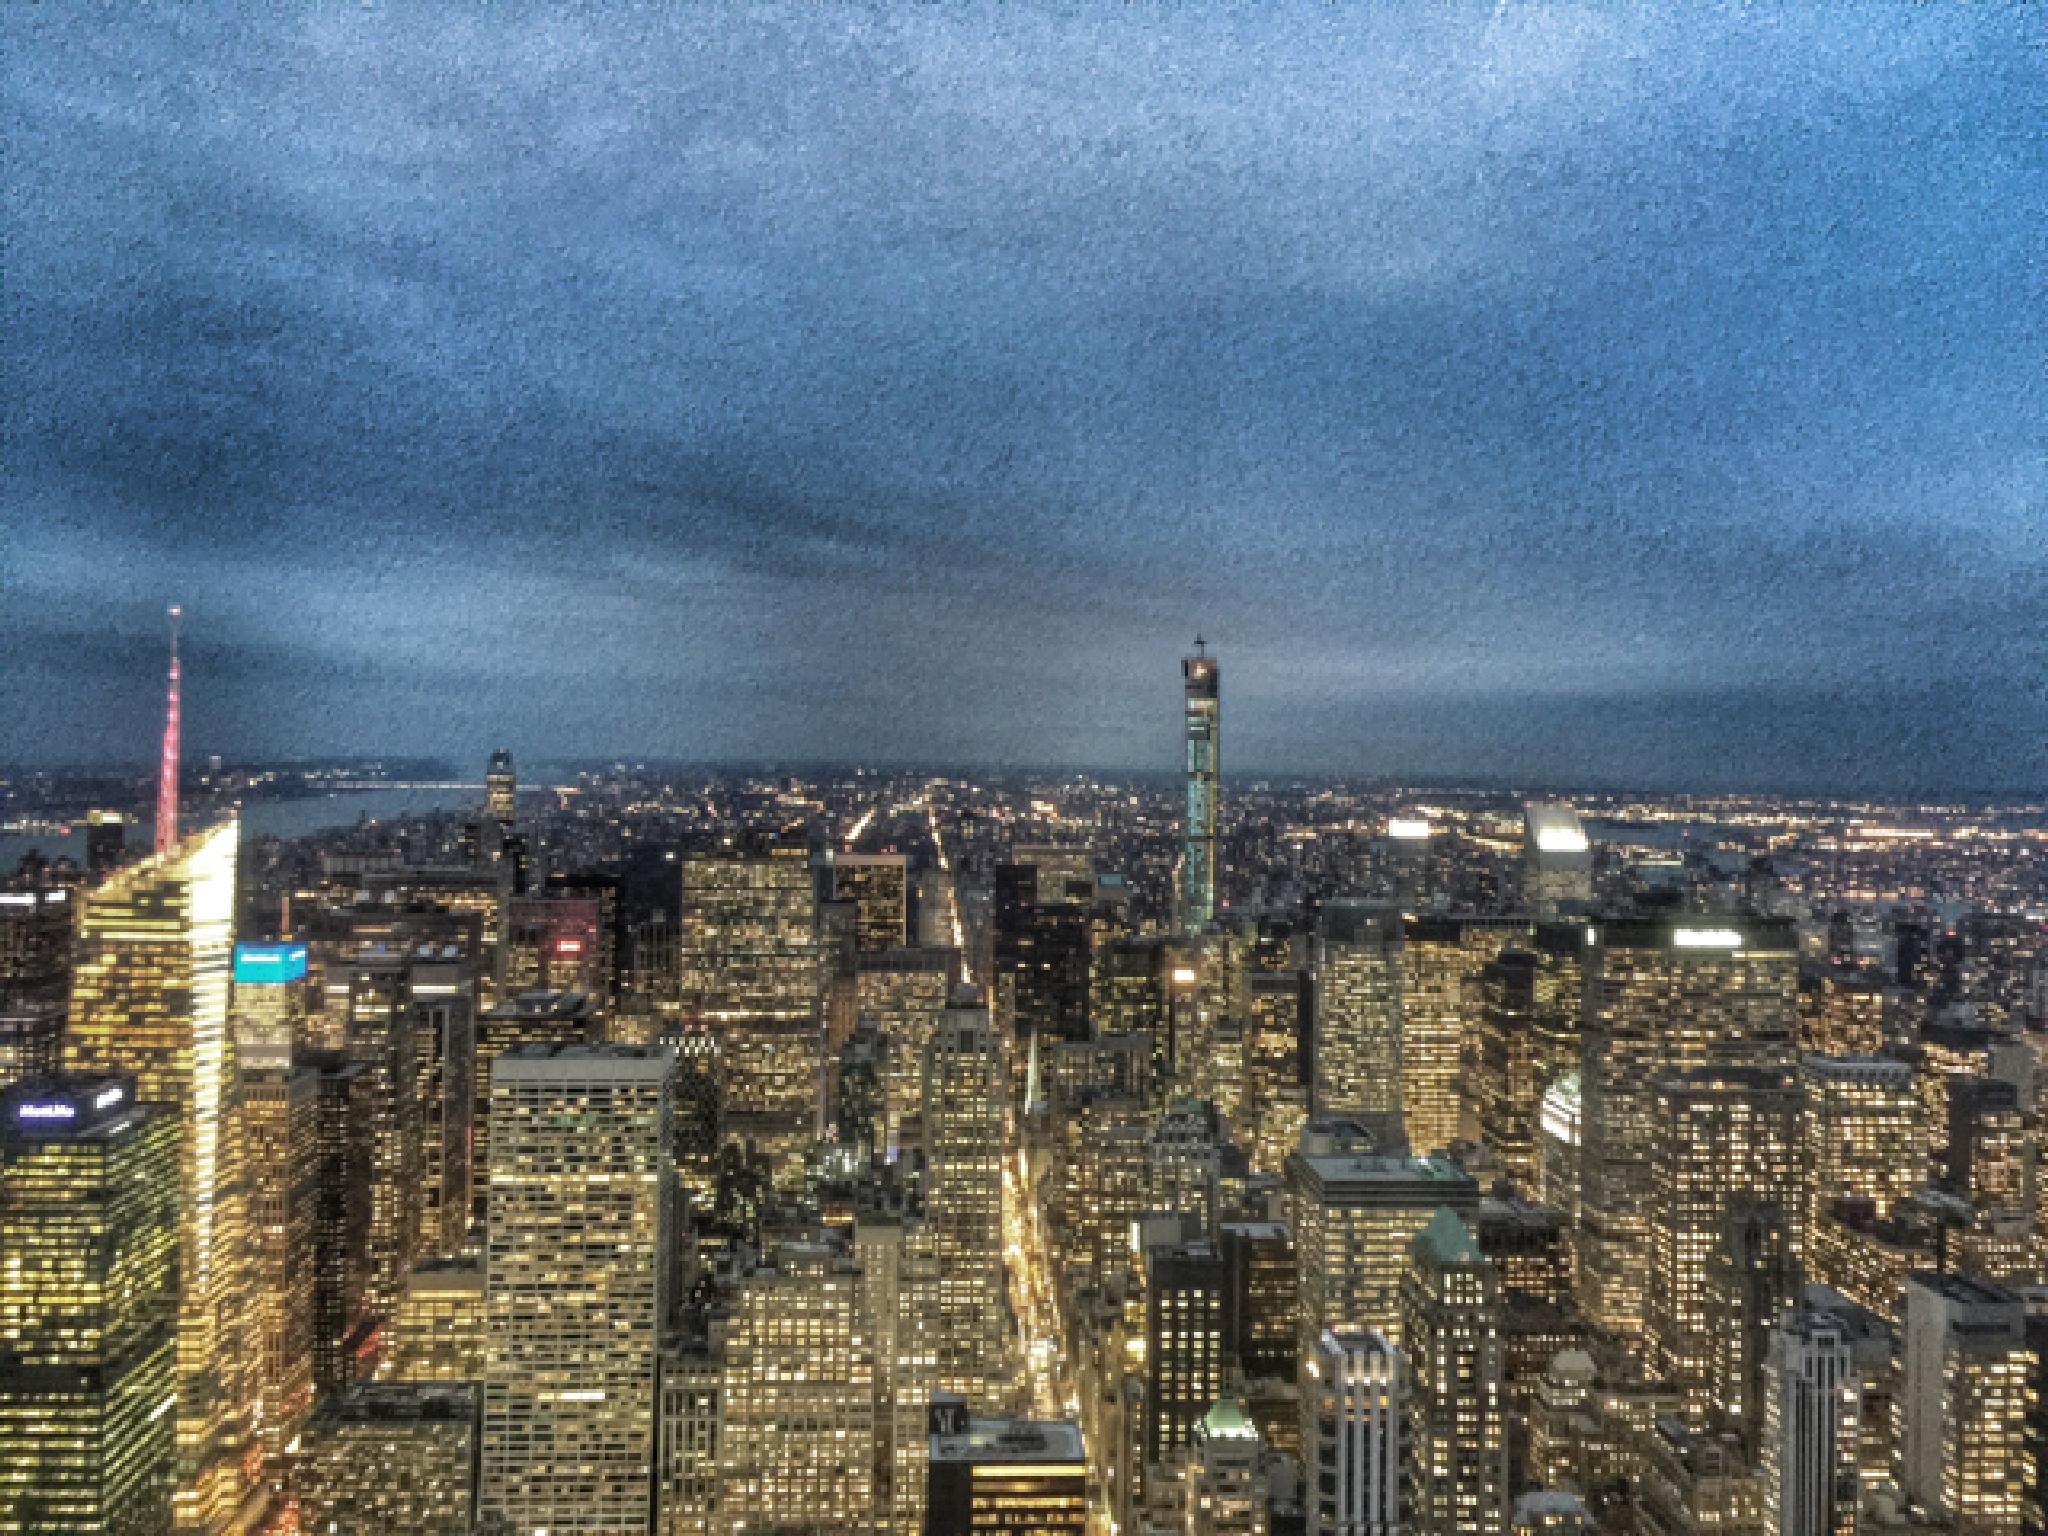 NYC at Dusk by Paul Brown